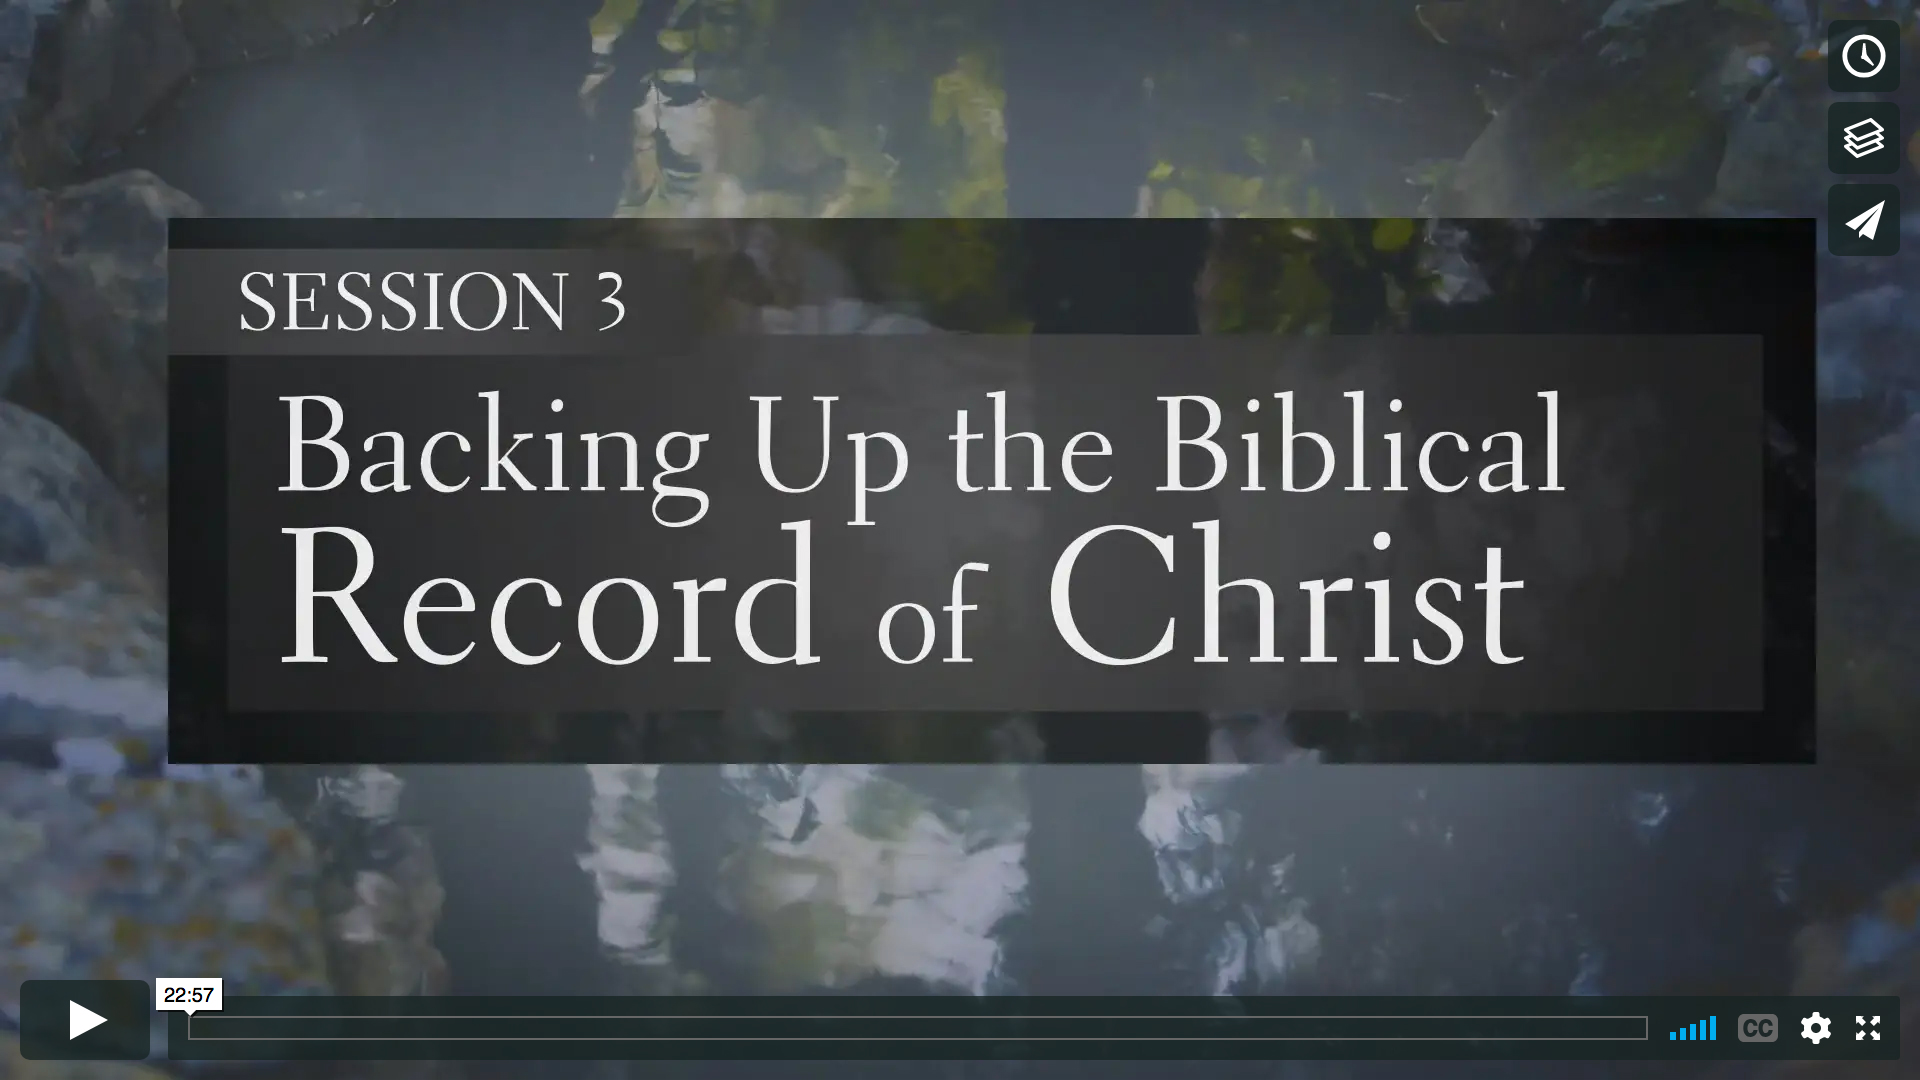 Session 3 - Backing Up the Biblical Record of Christ